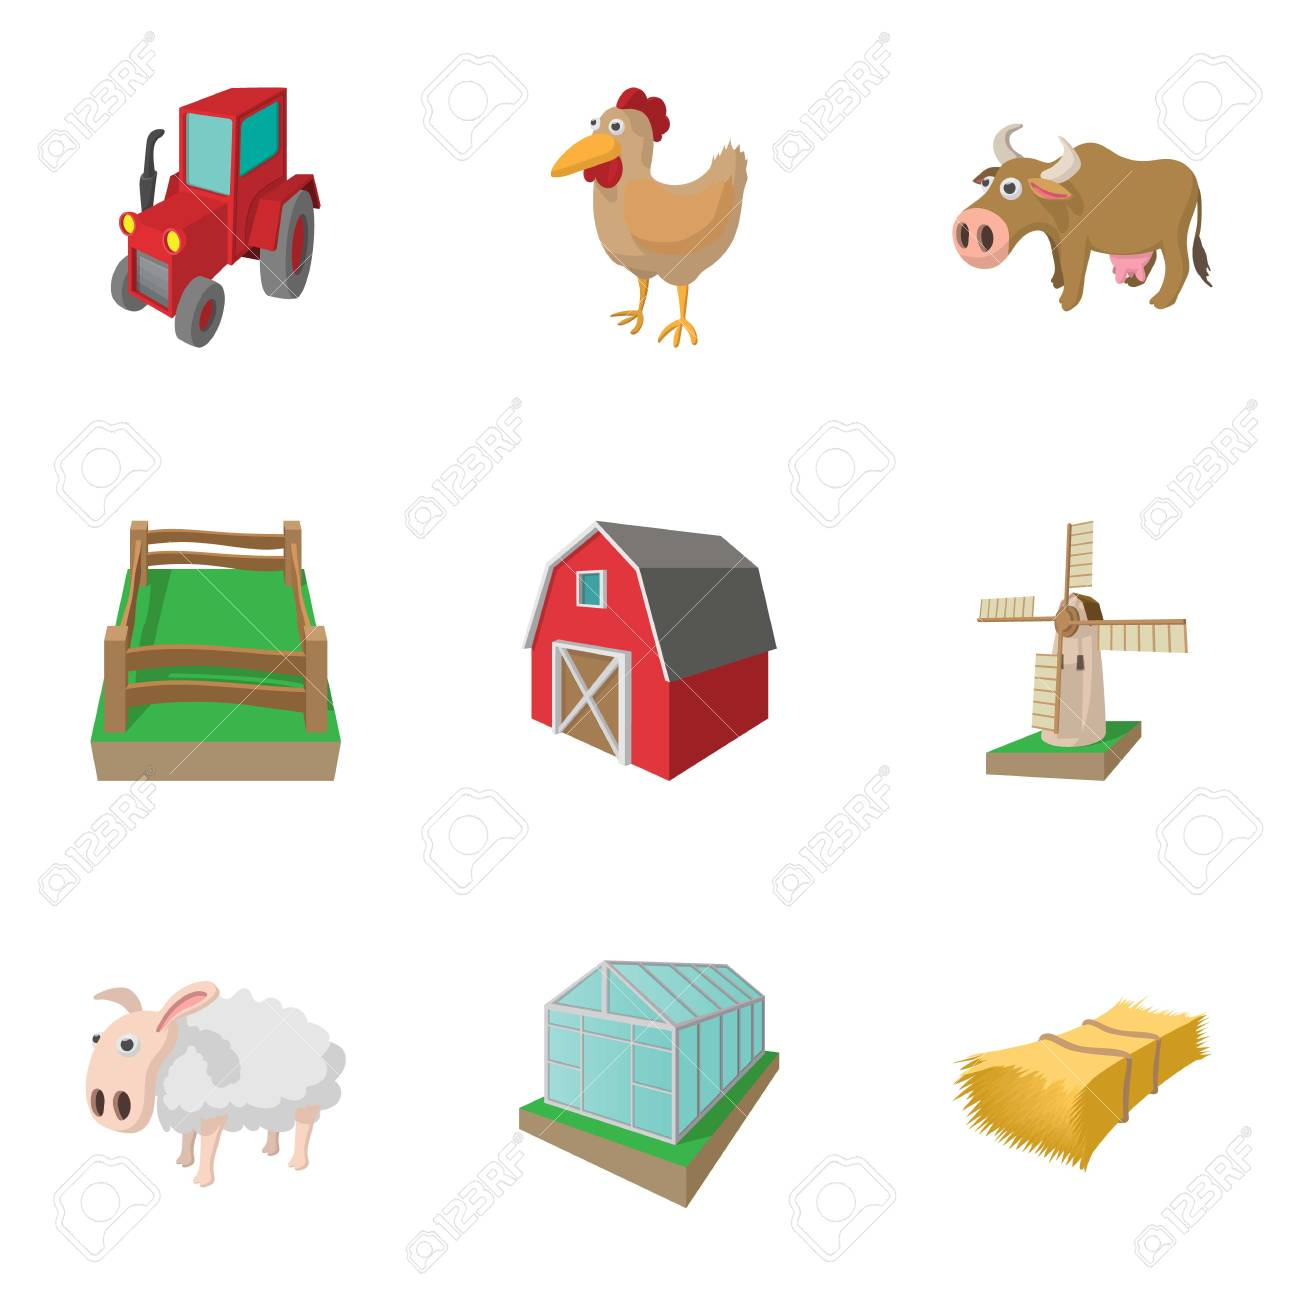 Farmhouse Icons Set Cartoon Style Stock Photo